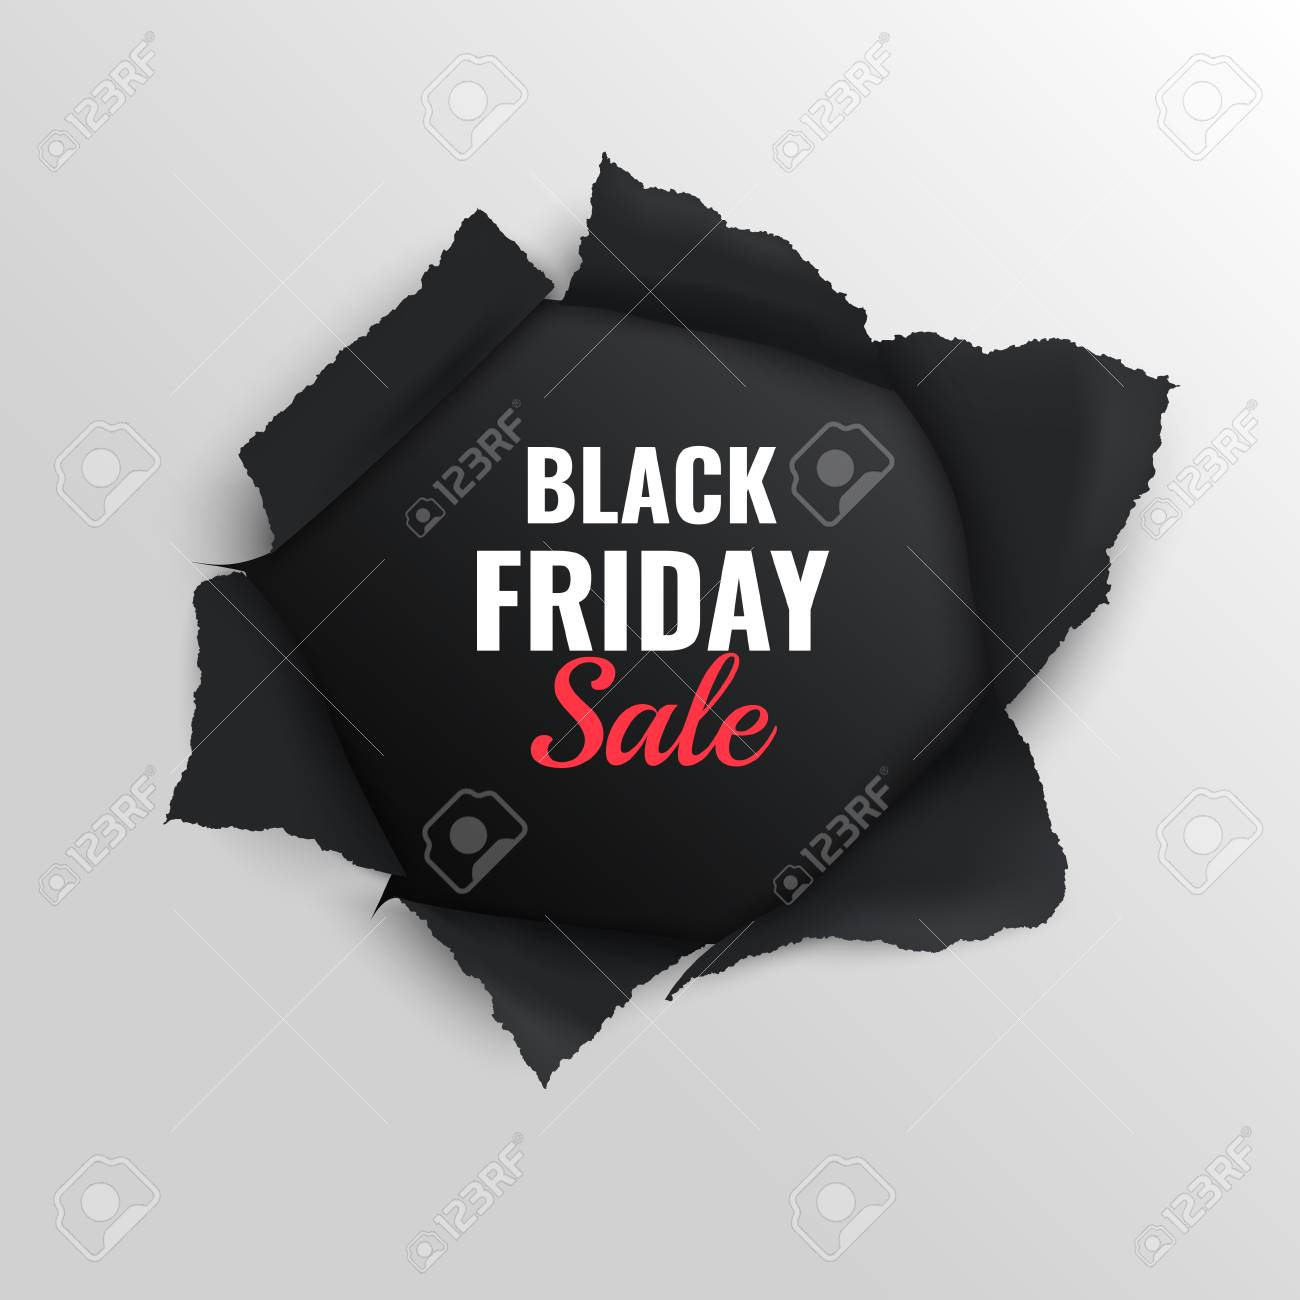 Black friday sale realistic composition on grey background with torn paper vector illustration - 114226654